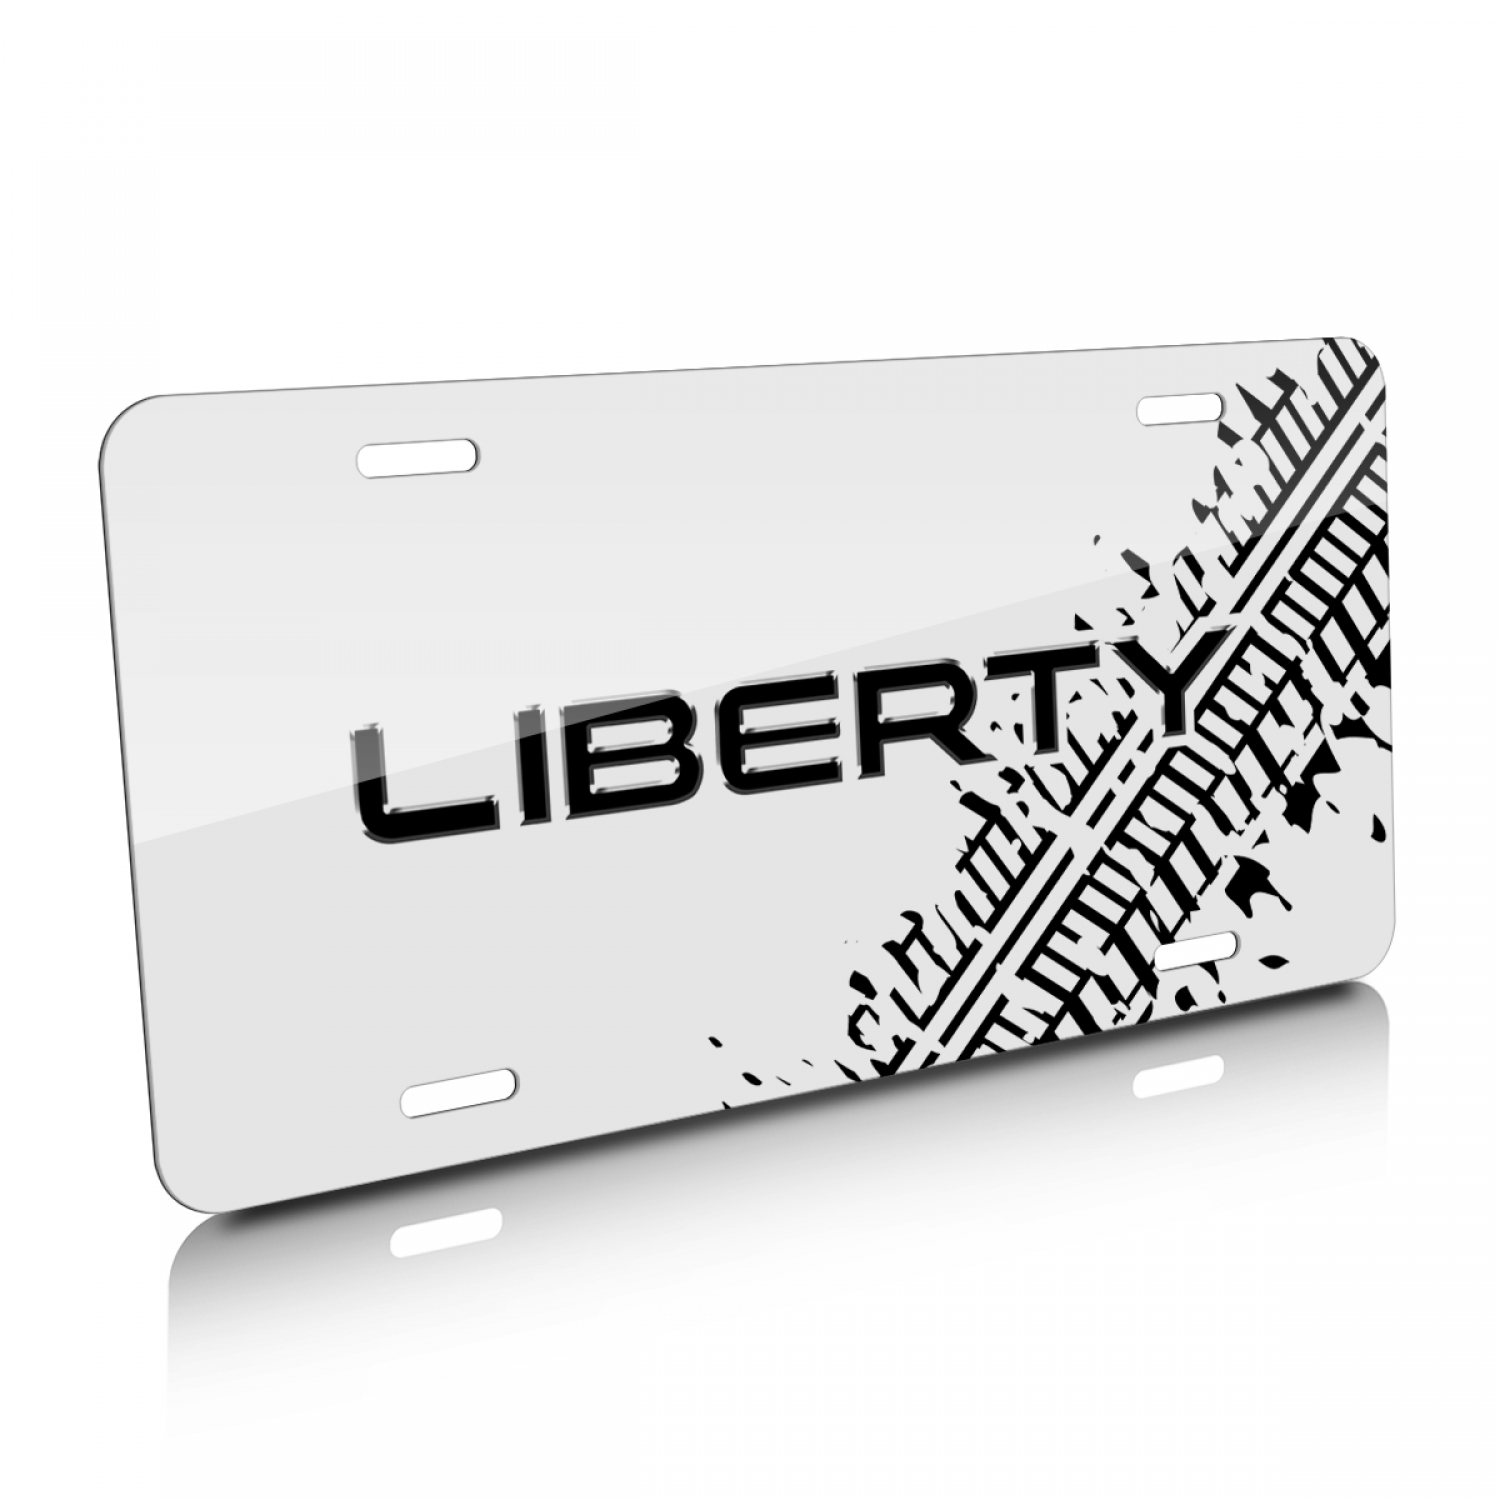 Jeep Liberty Tire Mark Graphic White Aluminum License Plate